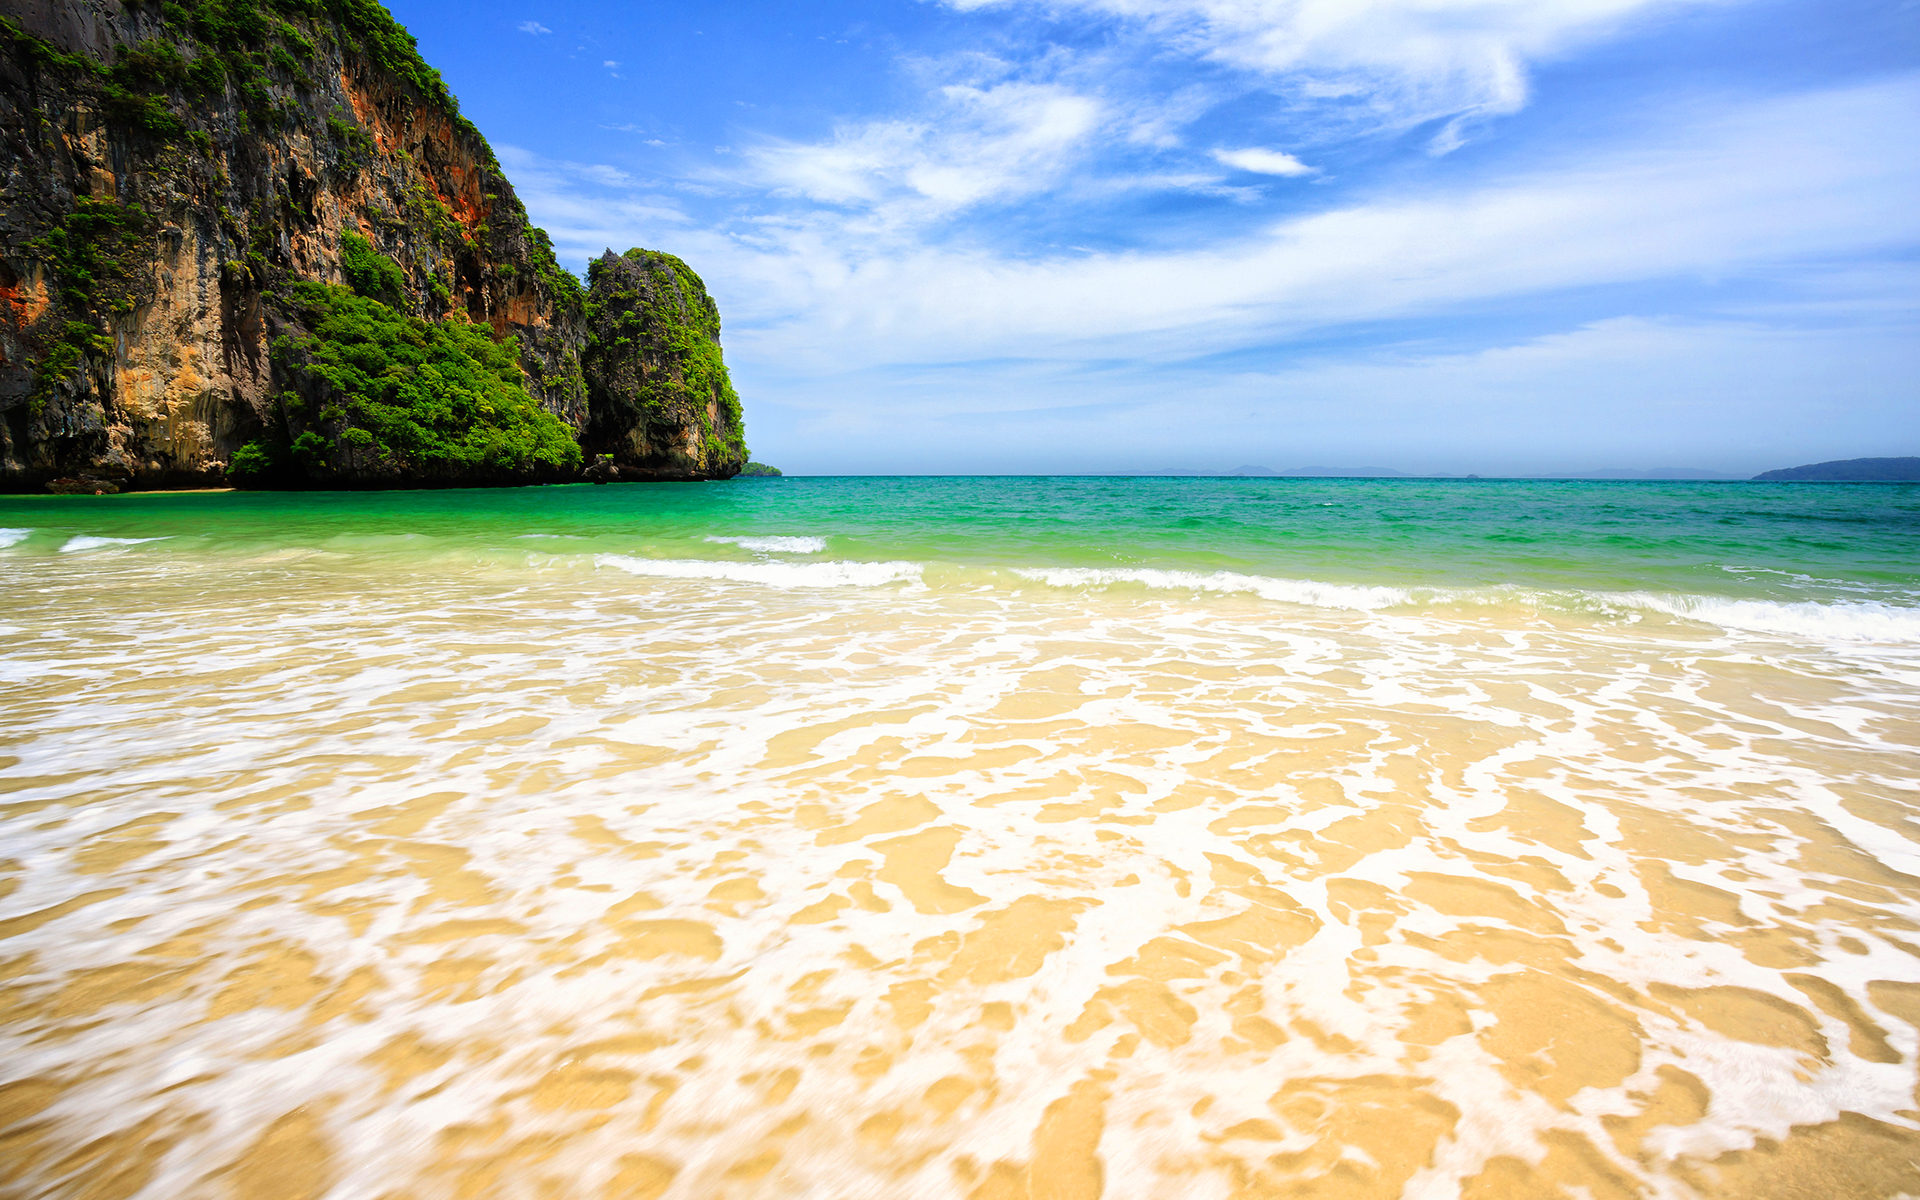 tropical beach paradise   HD Desktop Wallpapers 4k HD 1920x1200